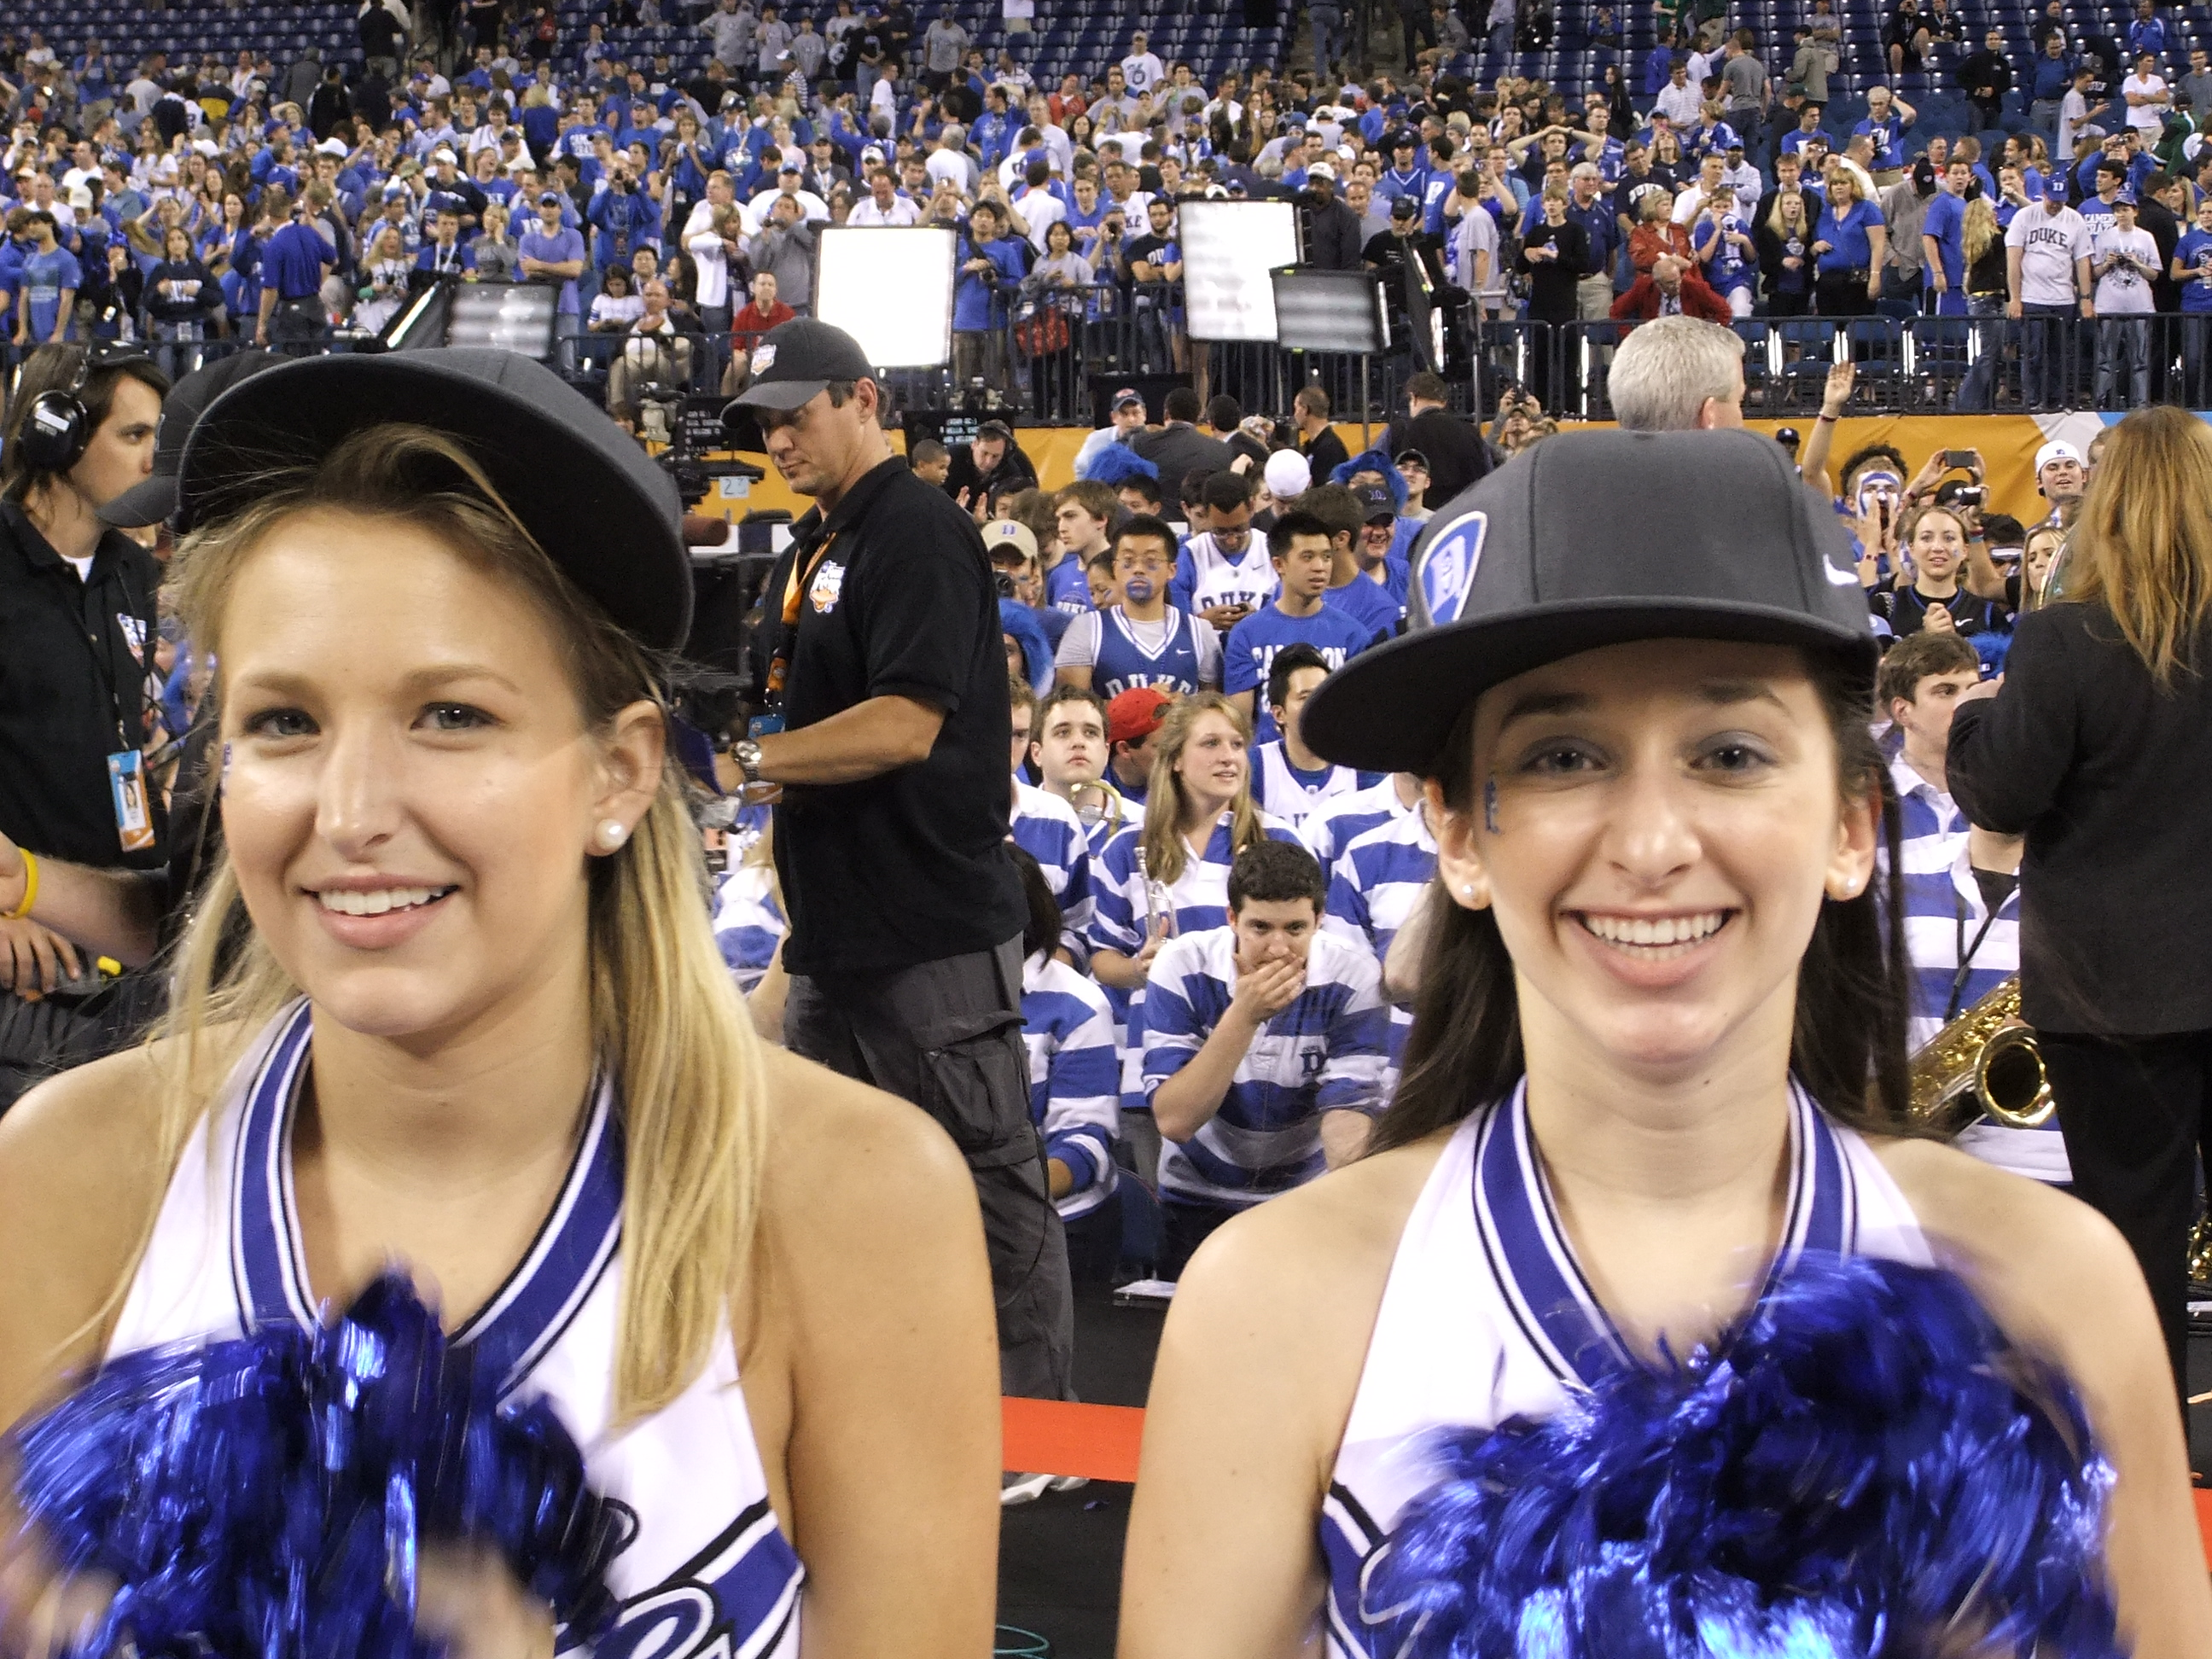 Monday Musings likes to salute the people behind the scenes, like these two lovely cheerleaders.